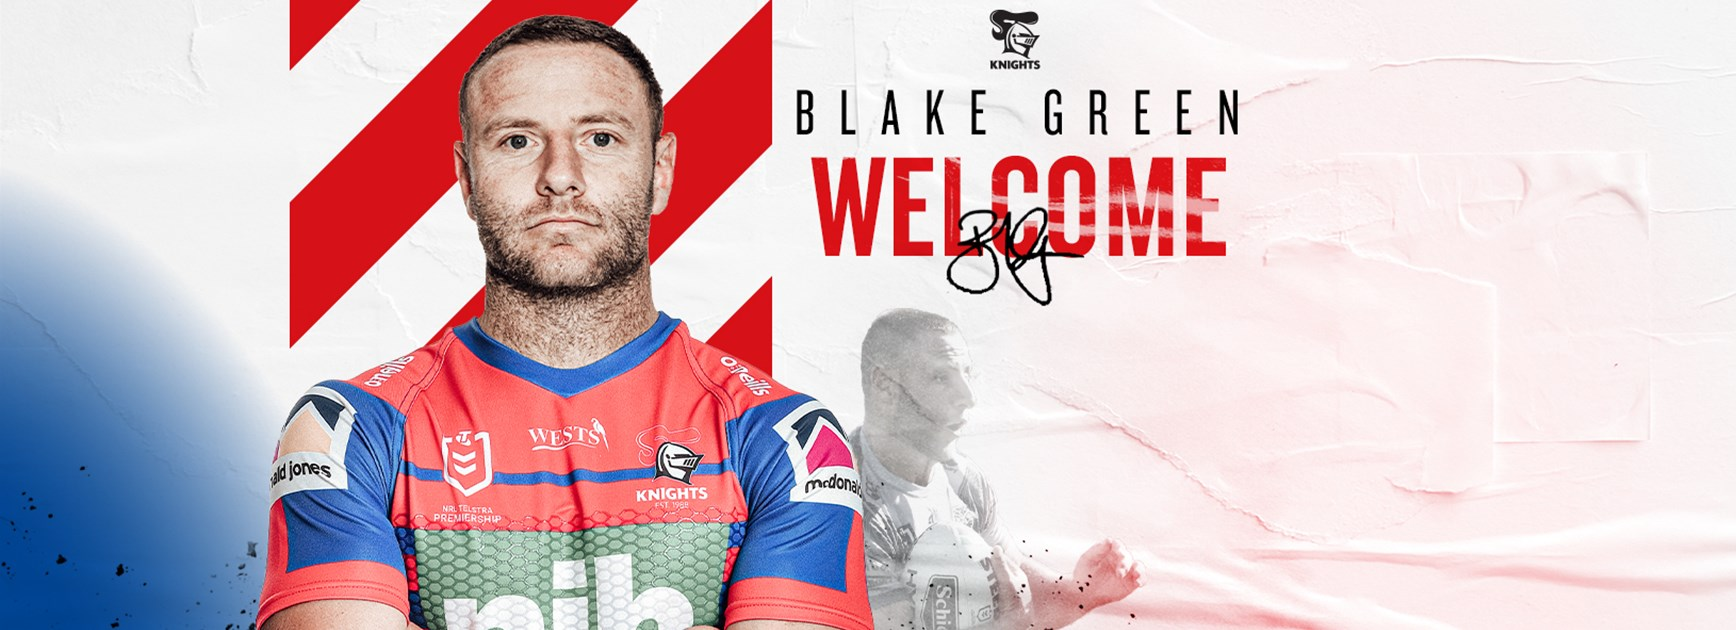 Blake Green joins Knights effective immediately